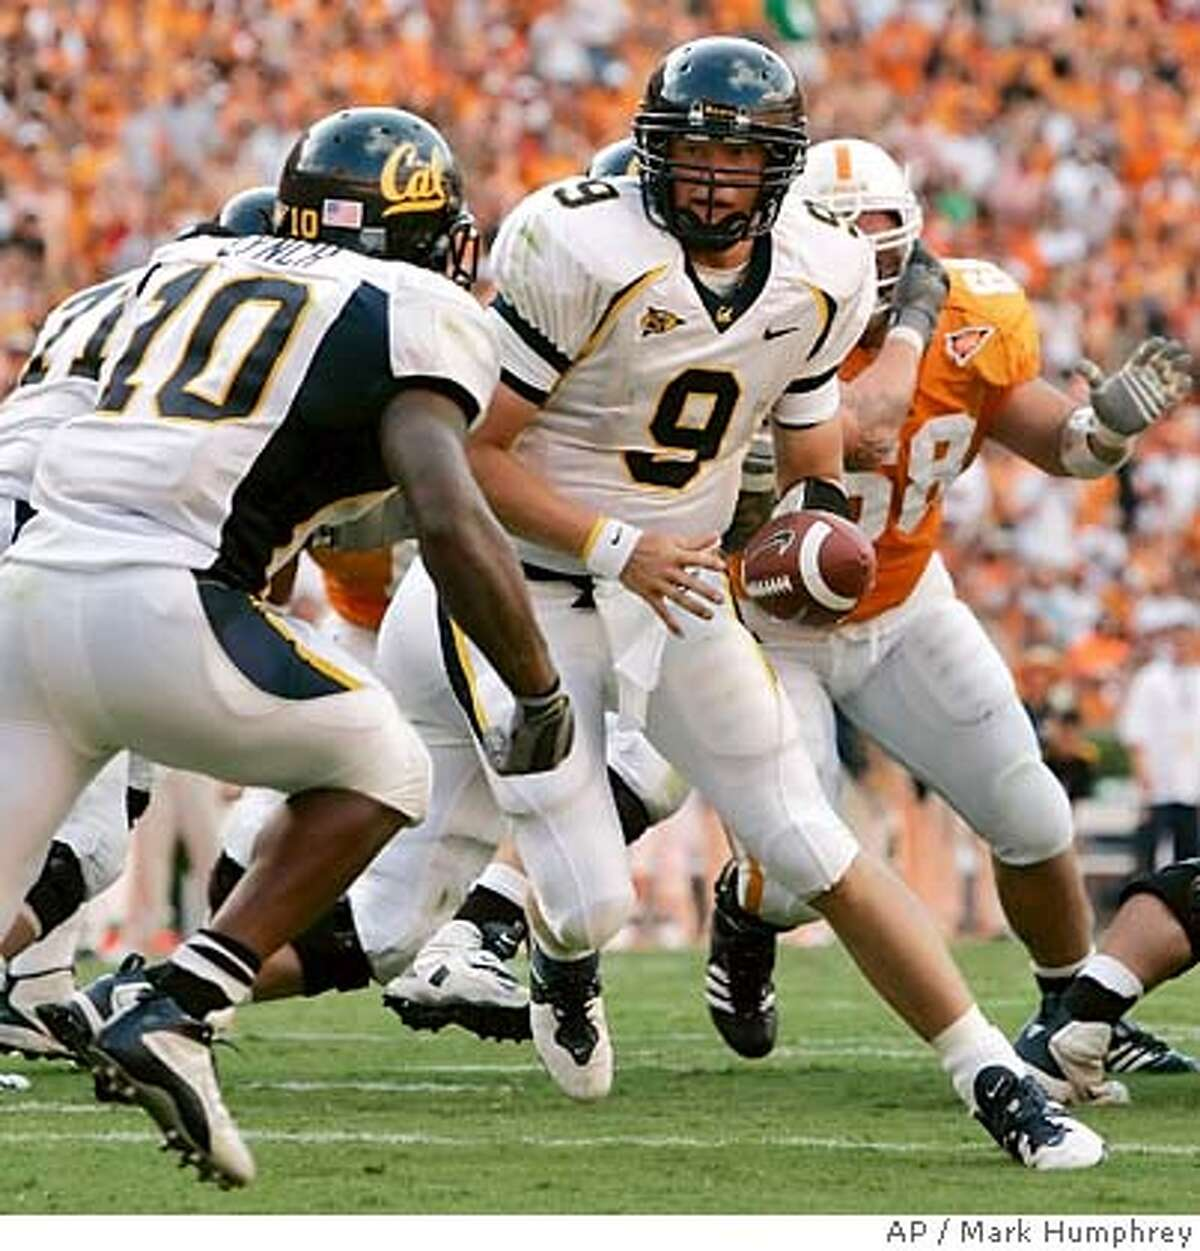 California quarterback Nate Longshore (9)hands off to tailback Marshawn Lynch (10) in the second quarter of their college football game against Tennessee on Saturday, Sept. 2, 2006, in Knoxville, Tenn. Tennessee upset California, 35-18. (AP Photo/Mark Humphrey)